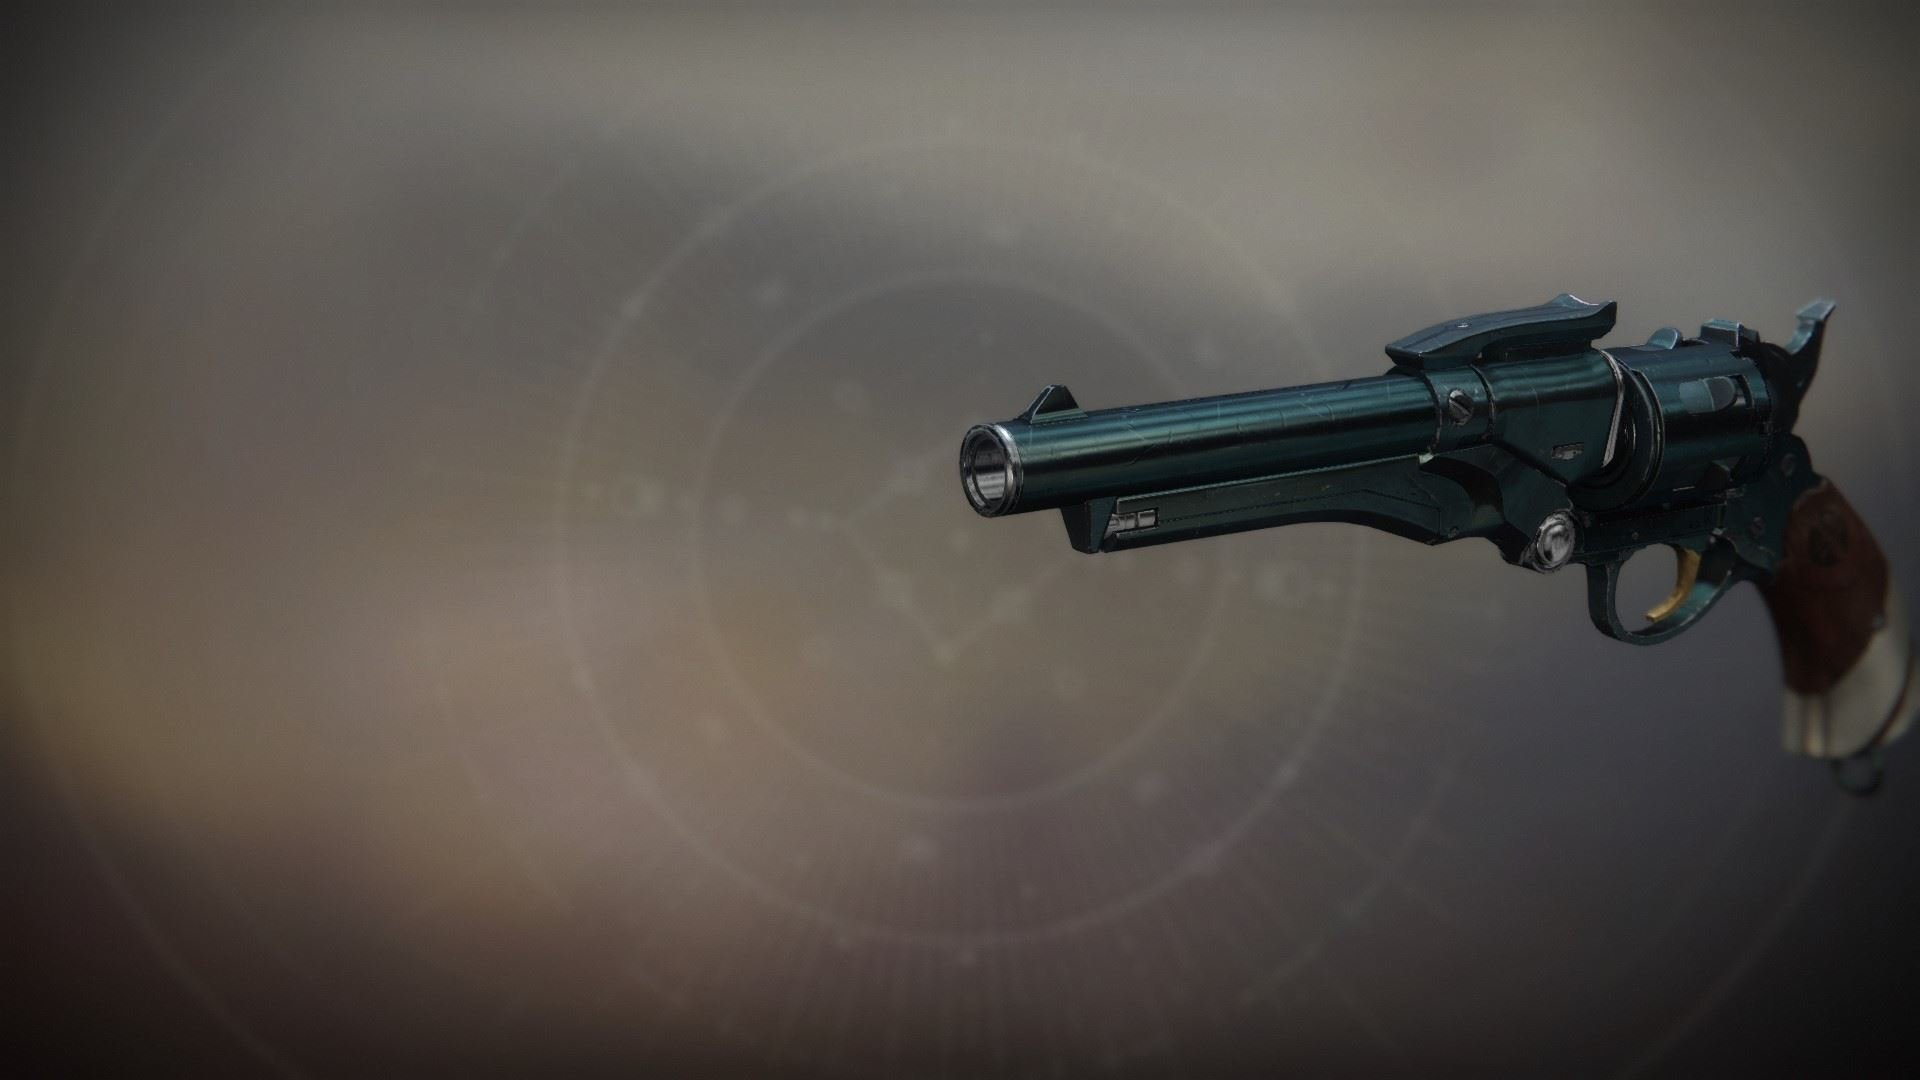 Trust - Destiny 2 Legendary Hand Cannon - Possible Rolls